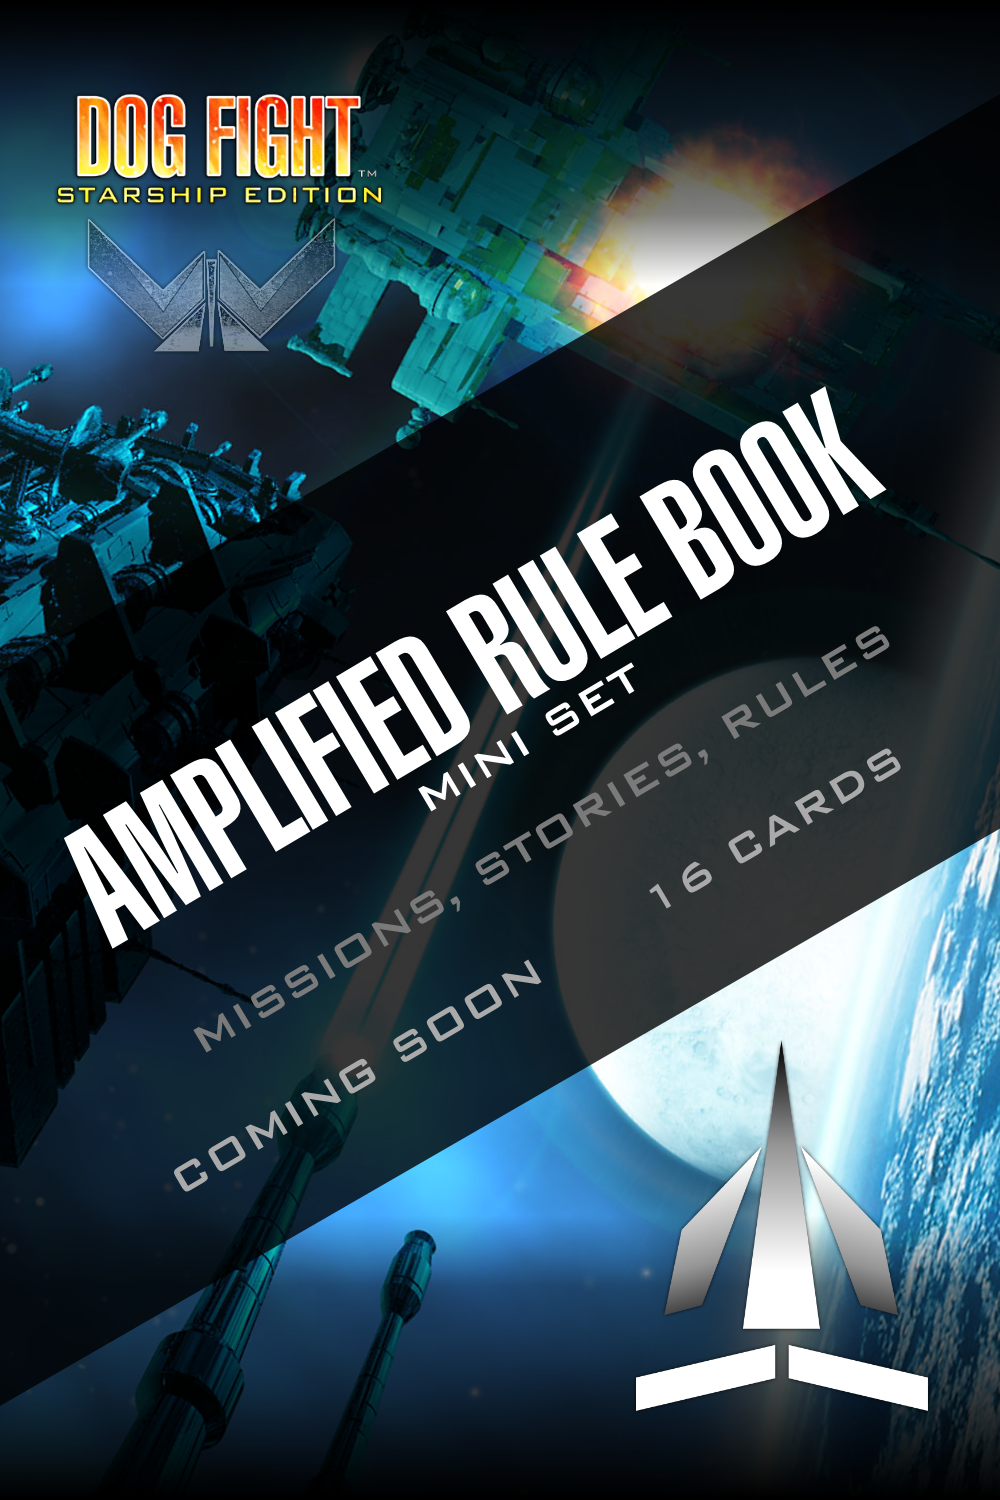 Dog Fight: Starship Edition Amplified Rulebook